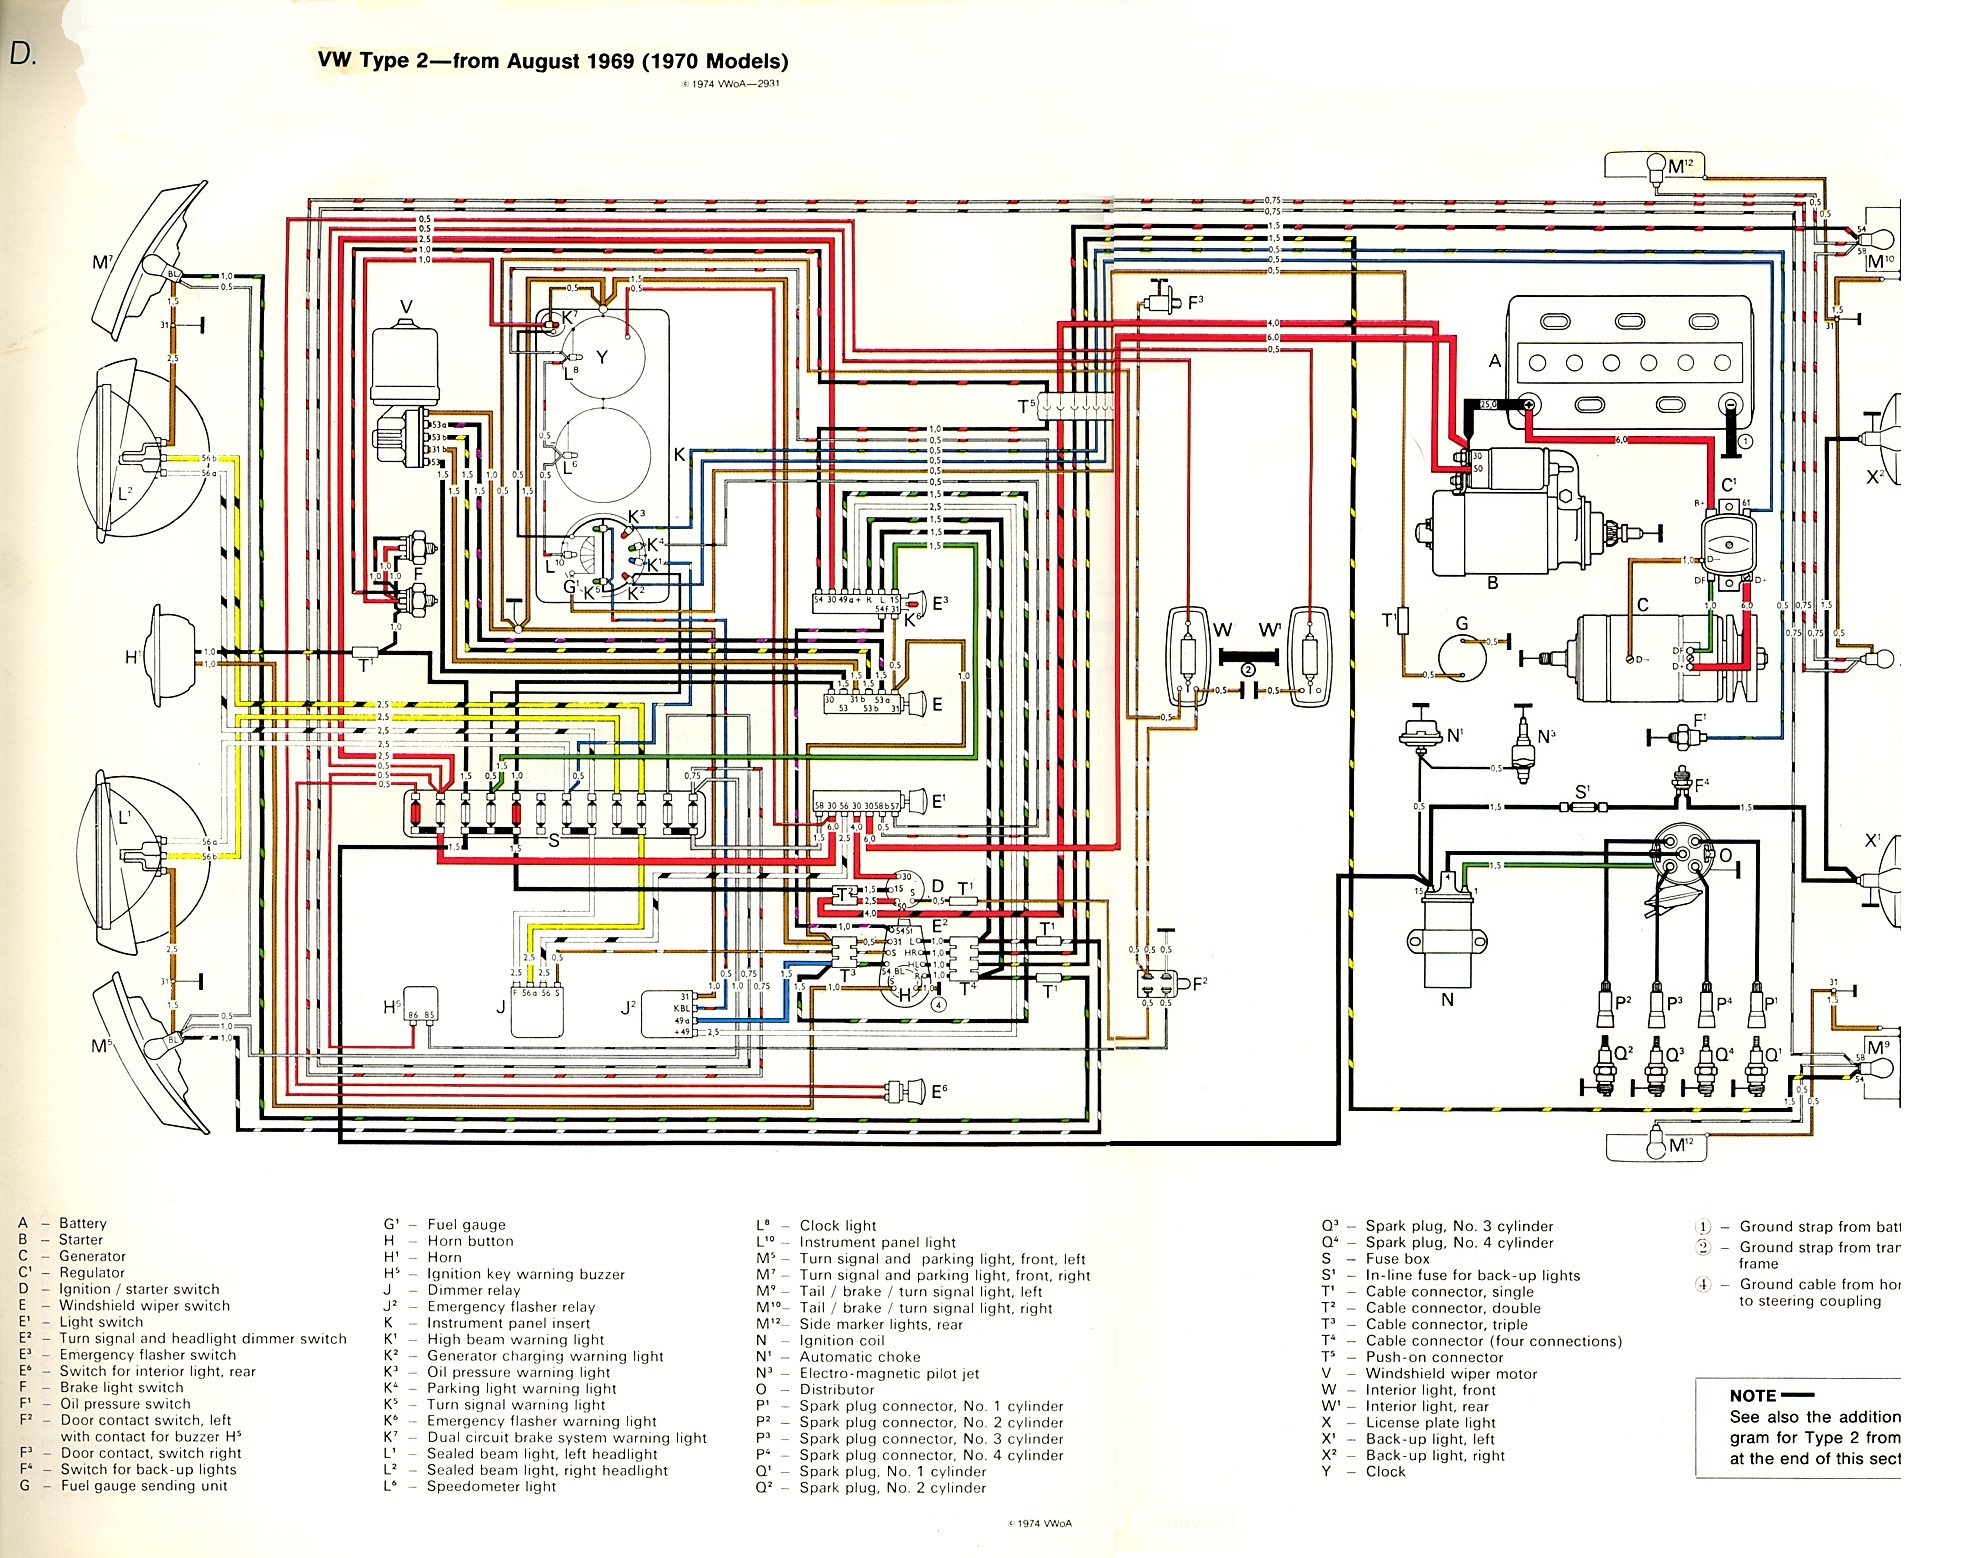 hight resolution of 71 beetle wiring diagram free picture schematic wiring diagrams 1969 vw wiring diagram 1964 vw beetle